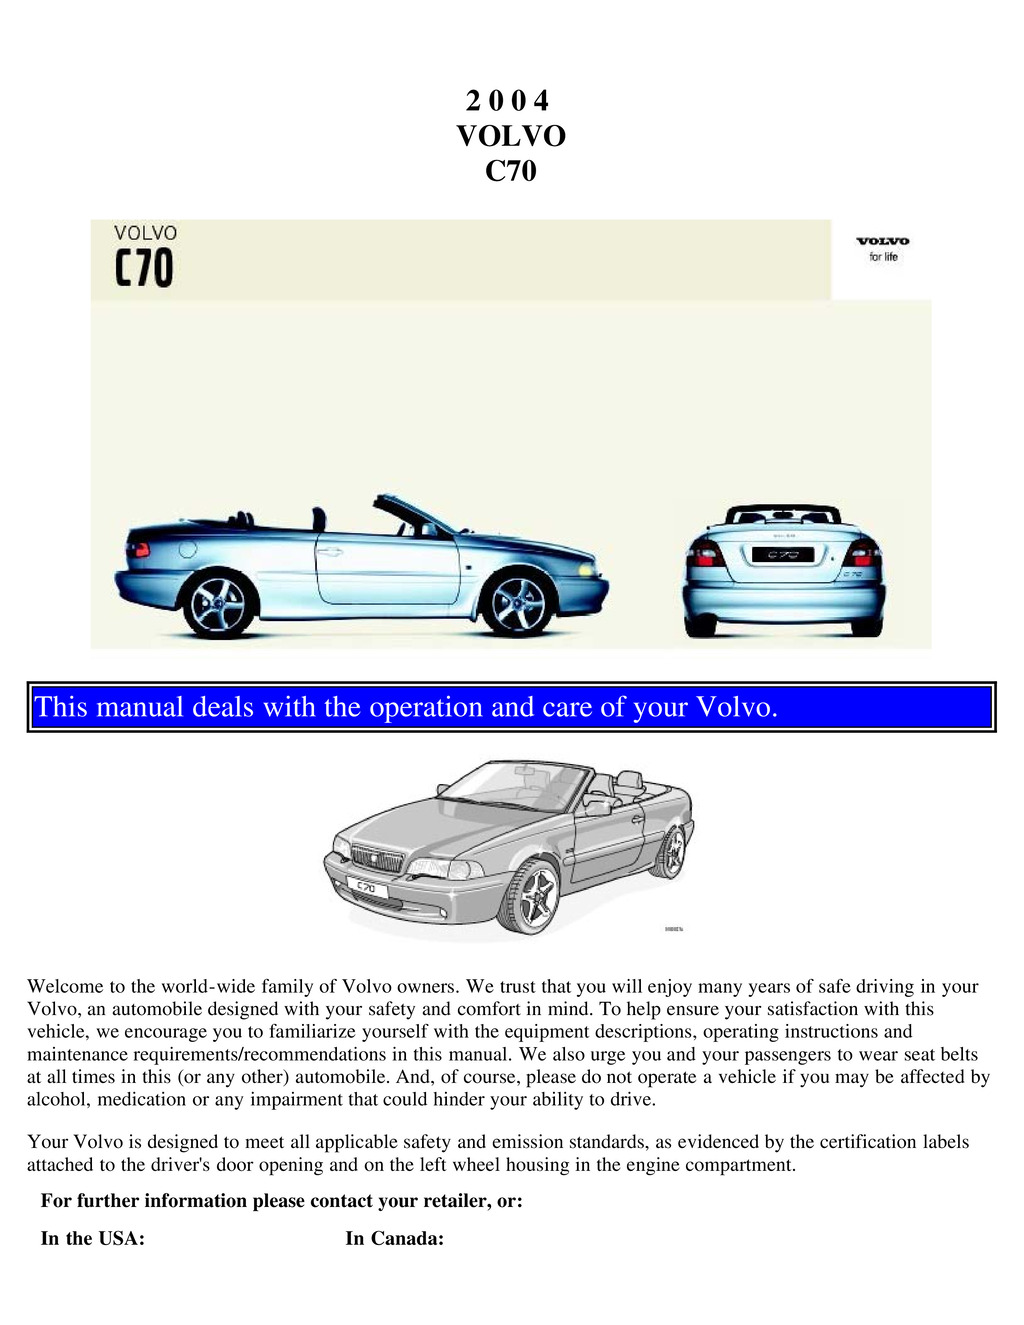 2004 Volvo C70 owners manual